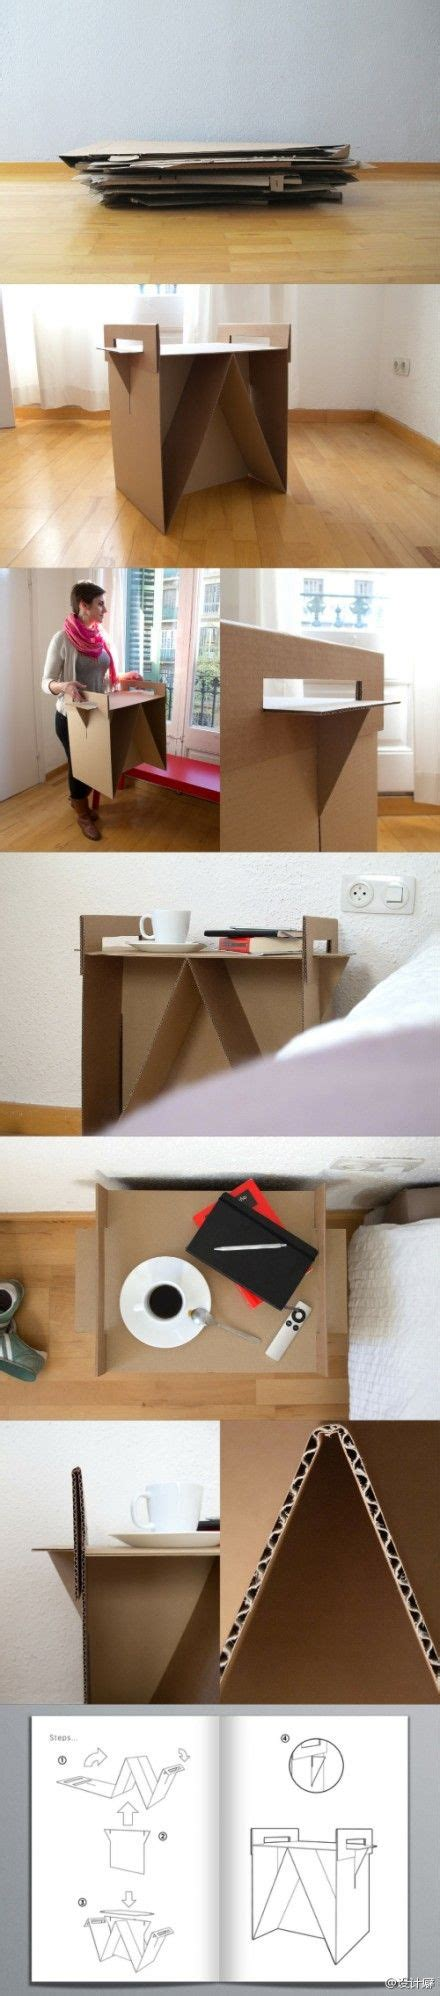 ikea furniture recycle 115 best images about cardboard recycling ideas on